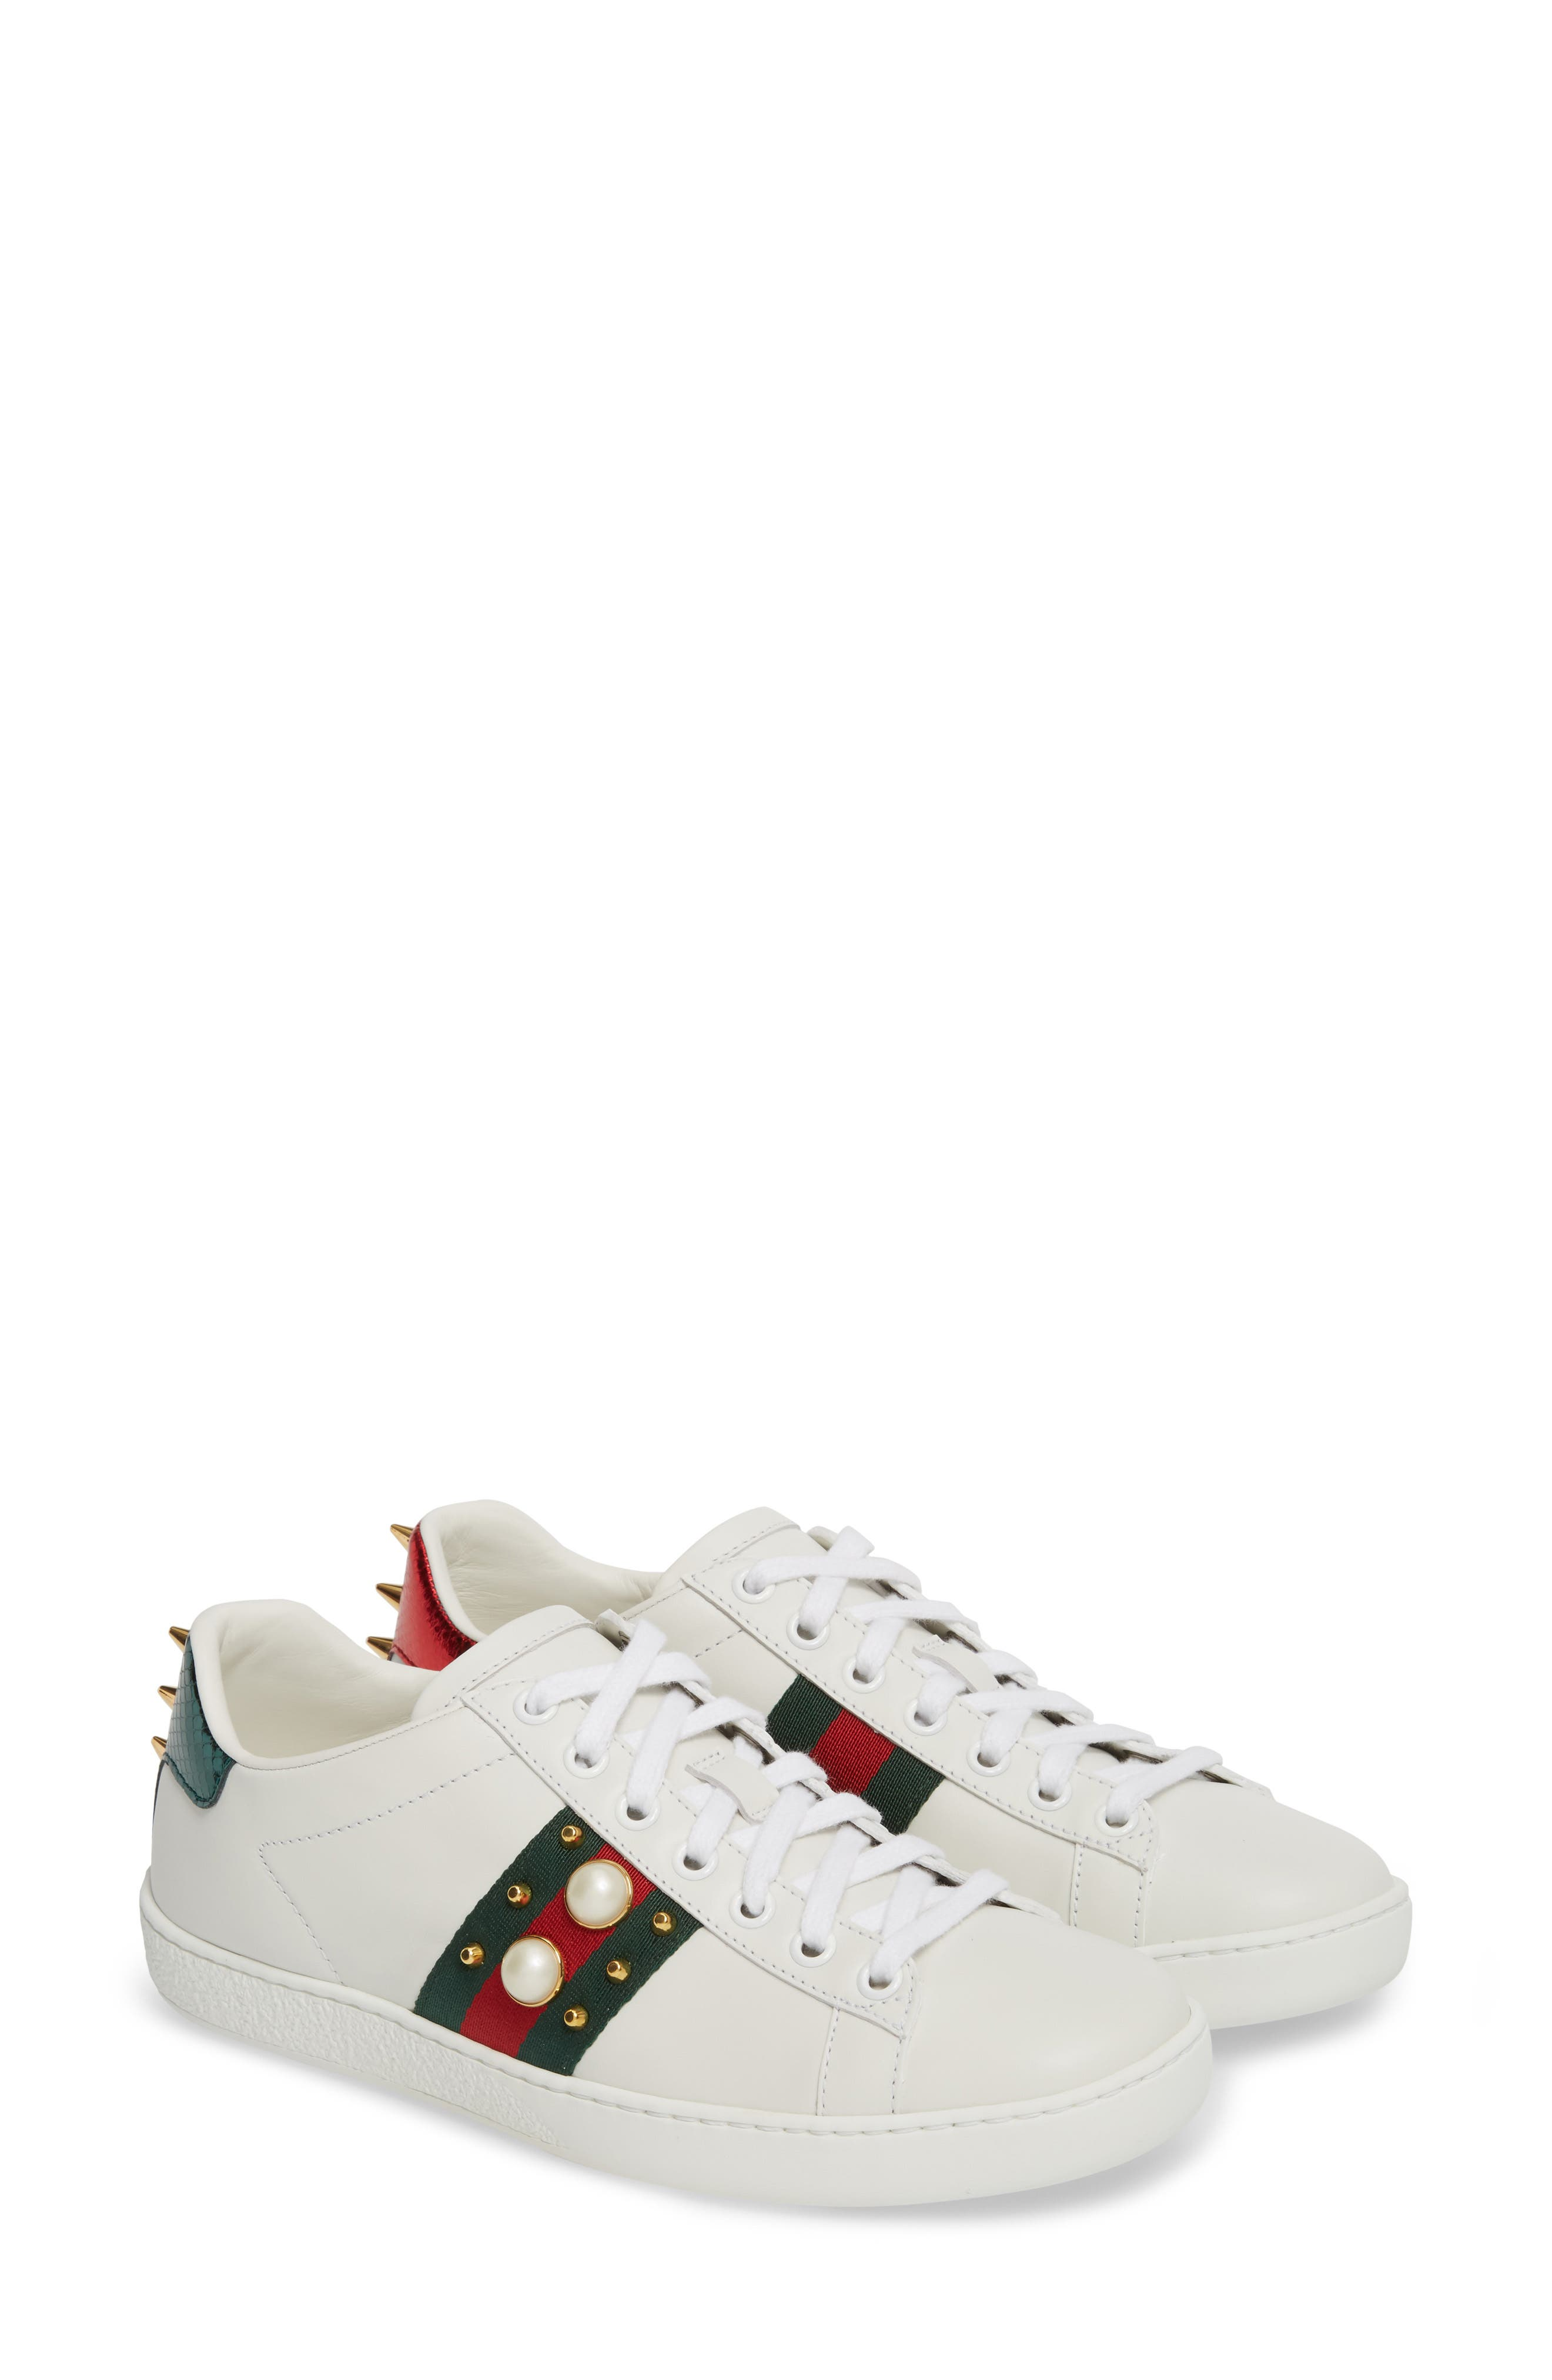 'New Ace' Low Top Sneaker,                         Main,                         color, White/ Red